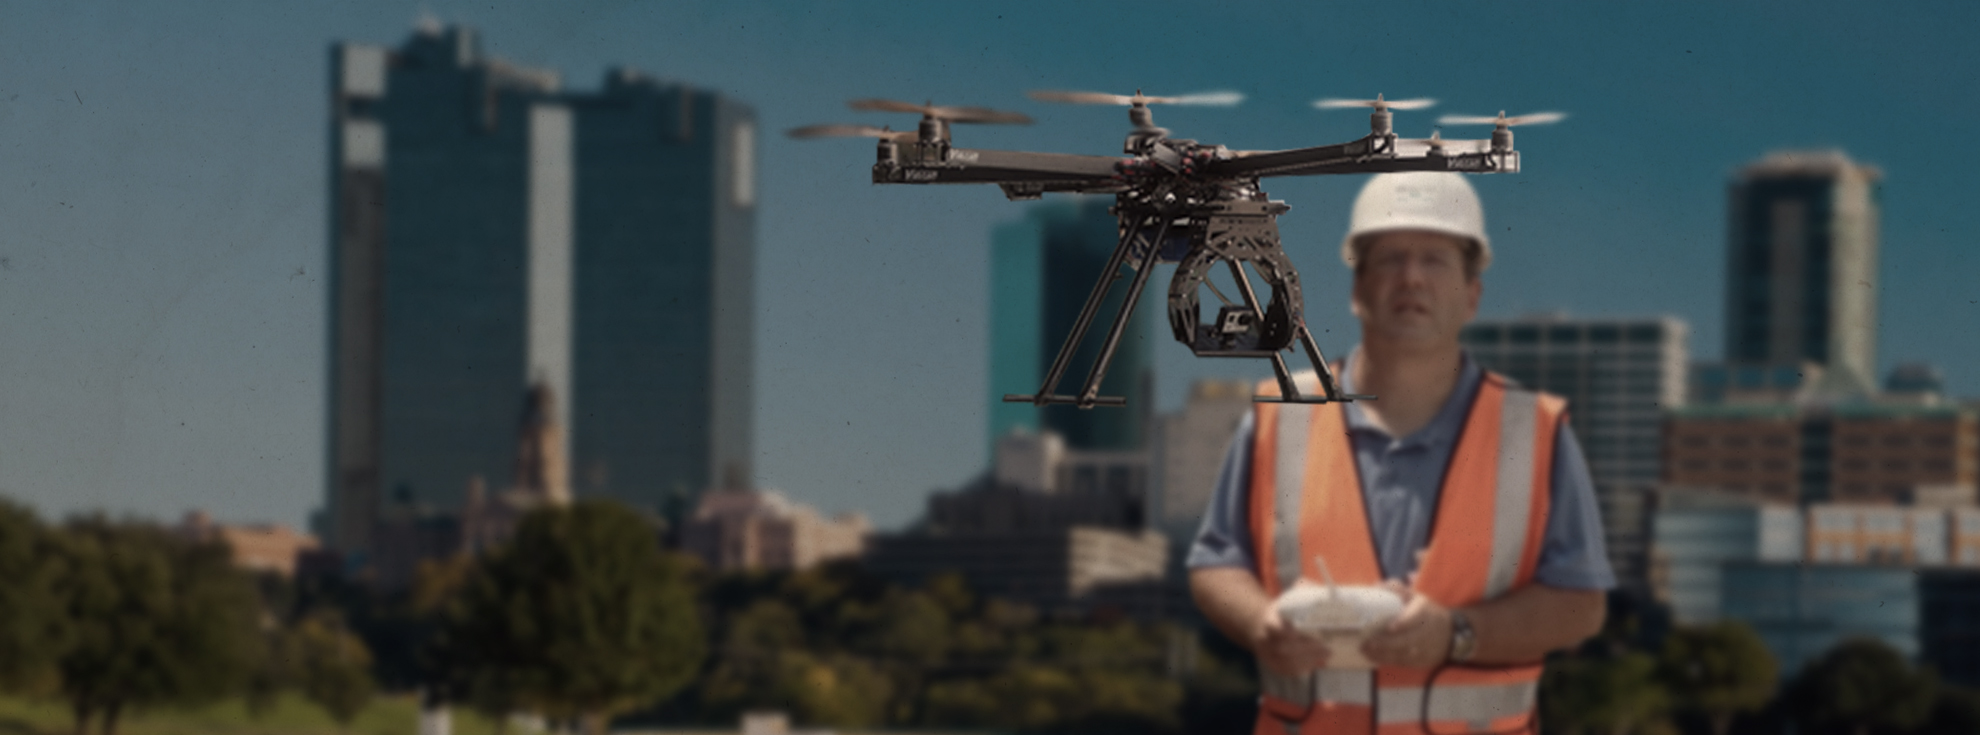 Drones in Corporate Video